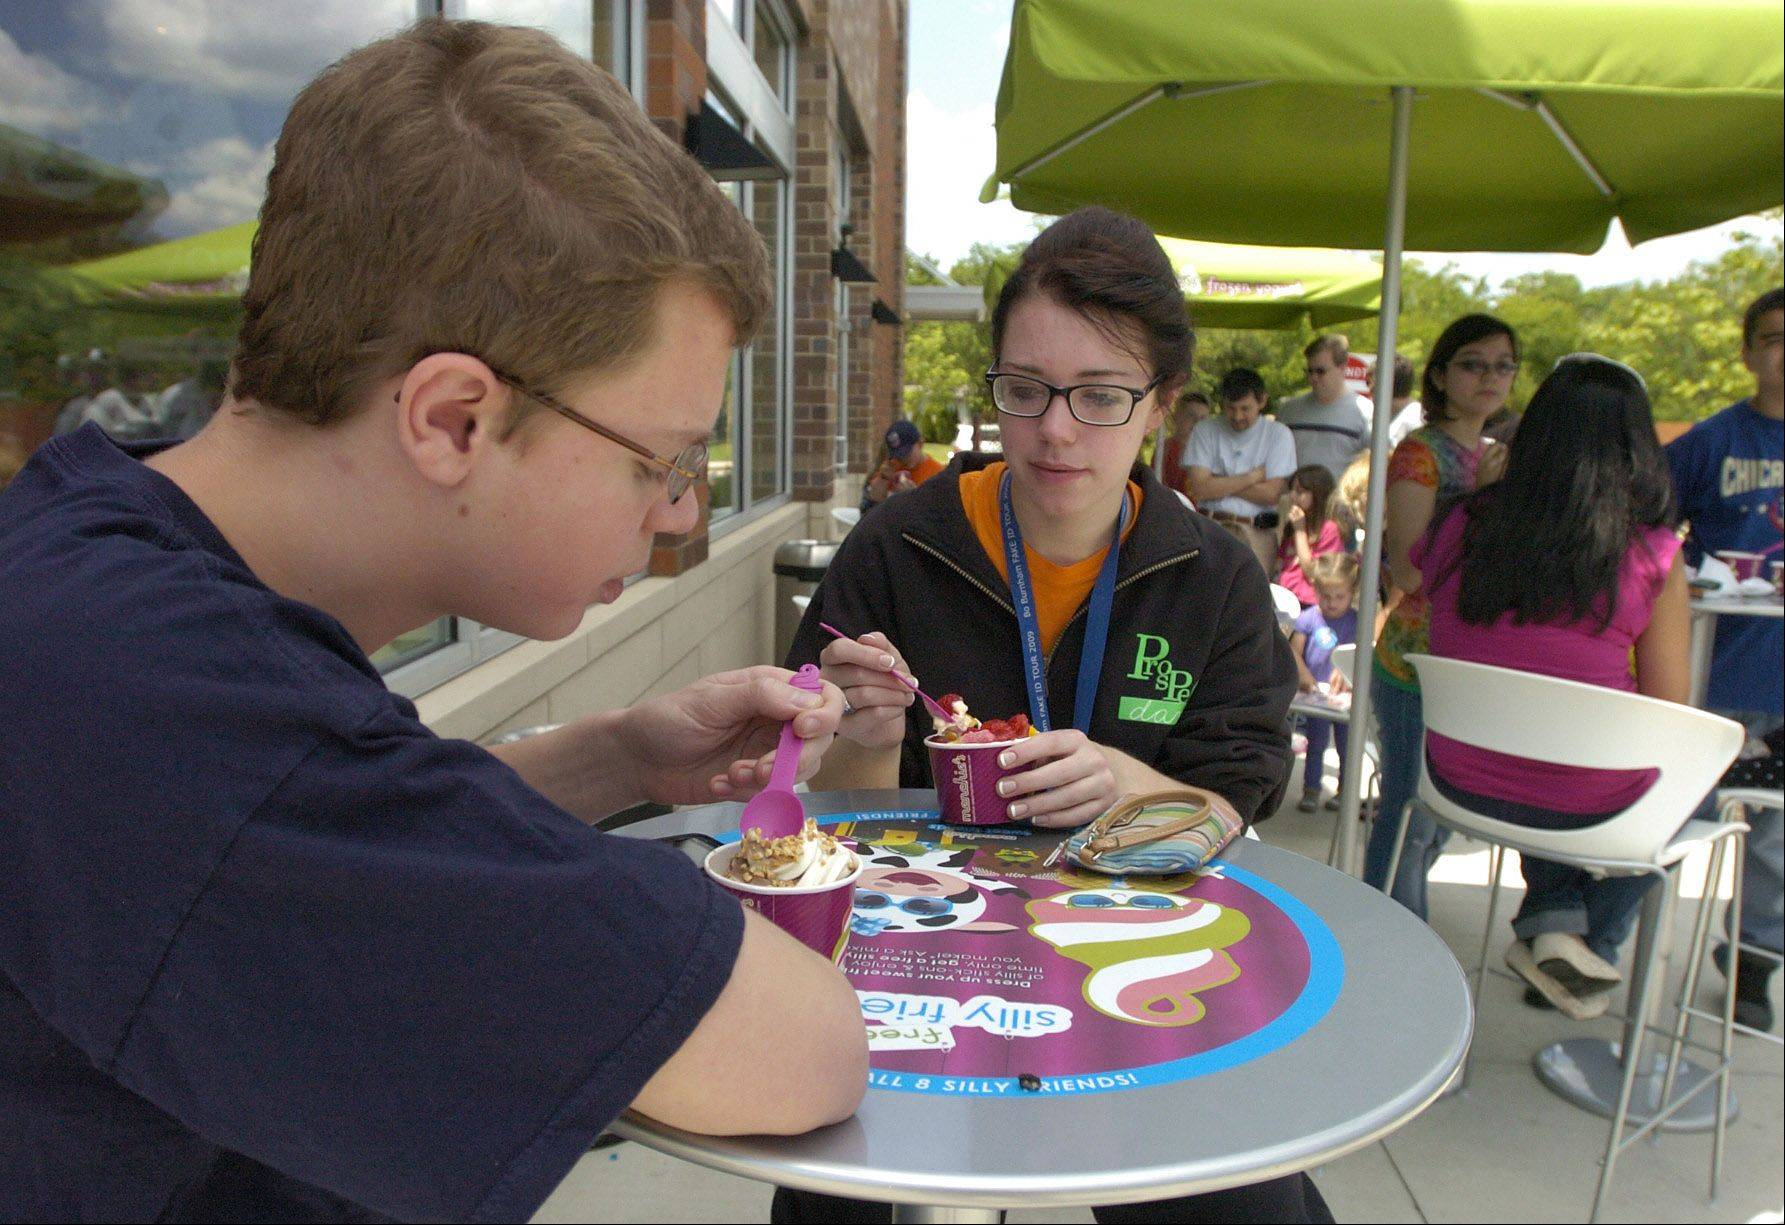 Tom and Julie Winter of Arlington Heights try a free sample at the new Menchie's frozen yogurt in Mount Prospect.